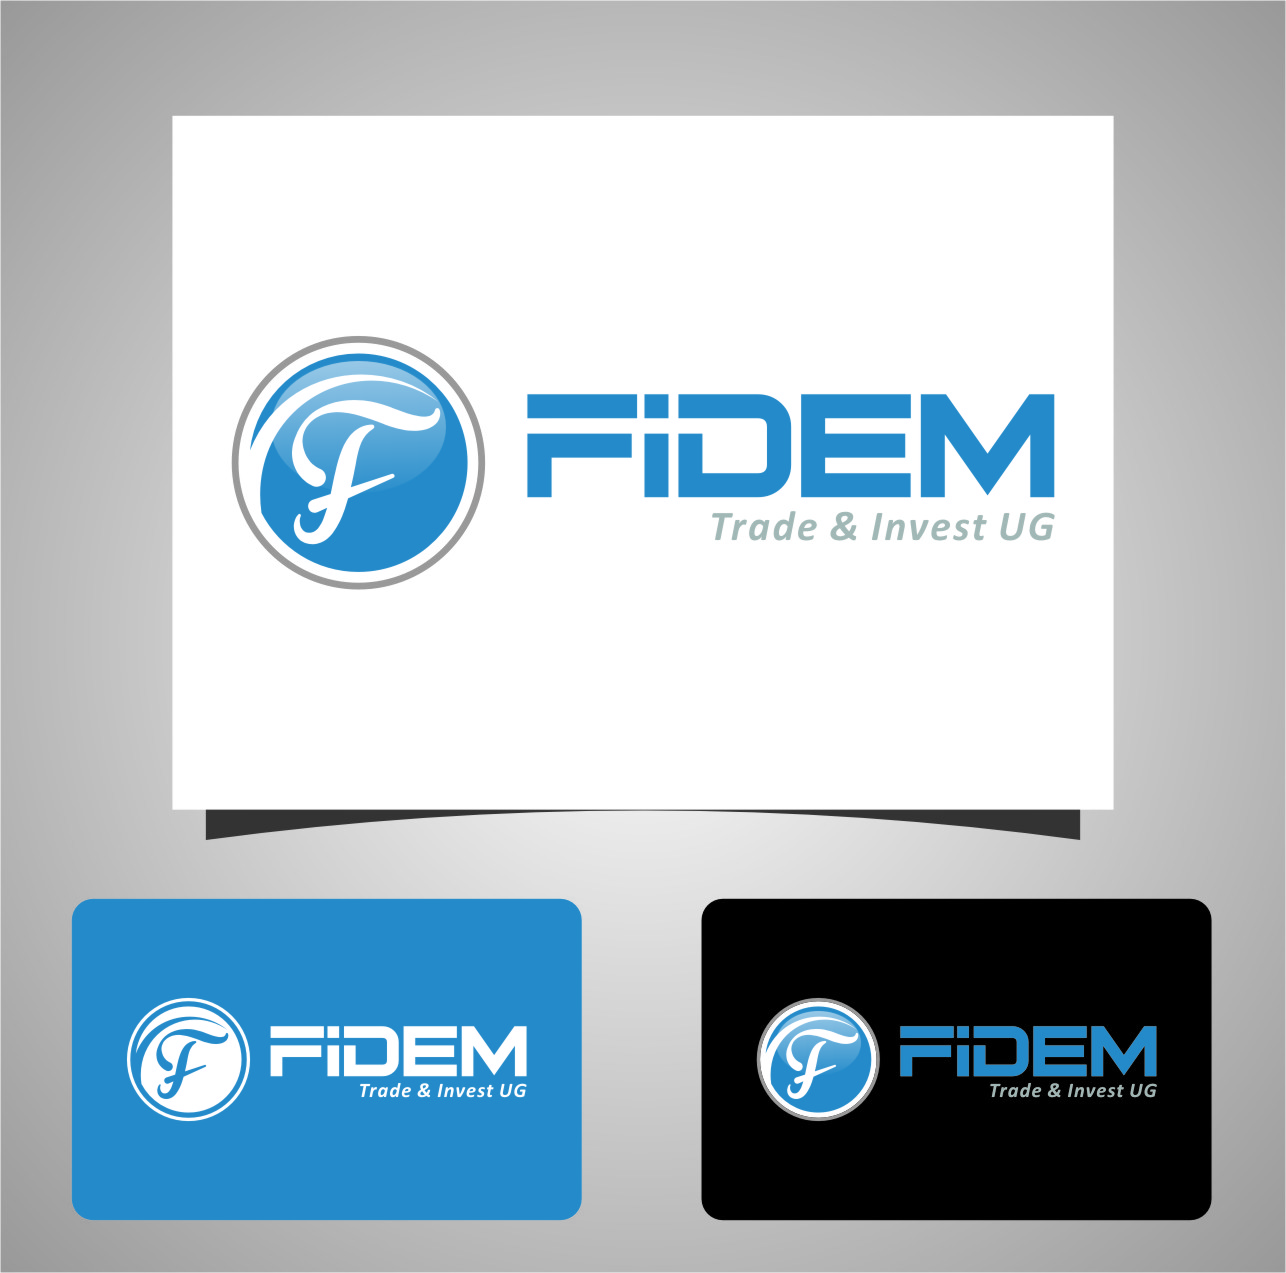 Logo Design by RasYa Muhammad Athaya - Entry No. 687 in the Logo Design Contest Professional Logo Design for FIDEM Trade & Invest UG.